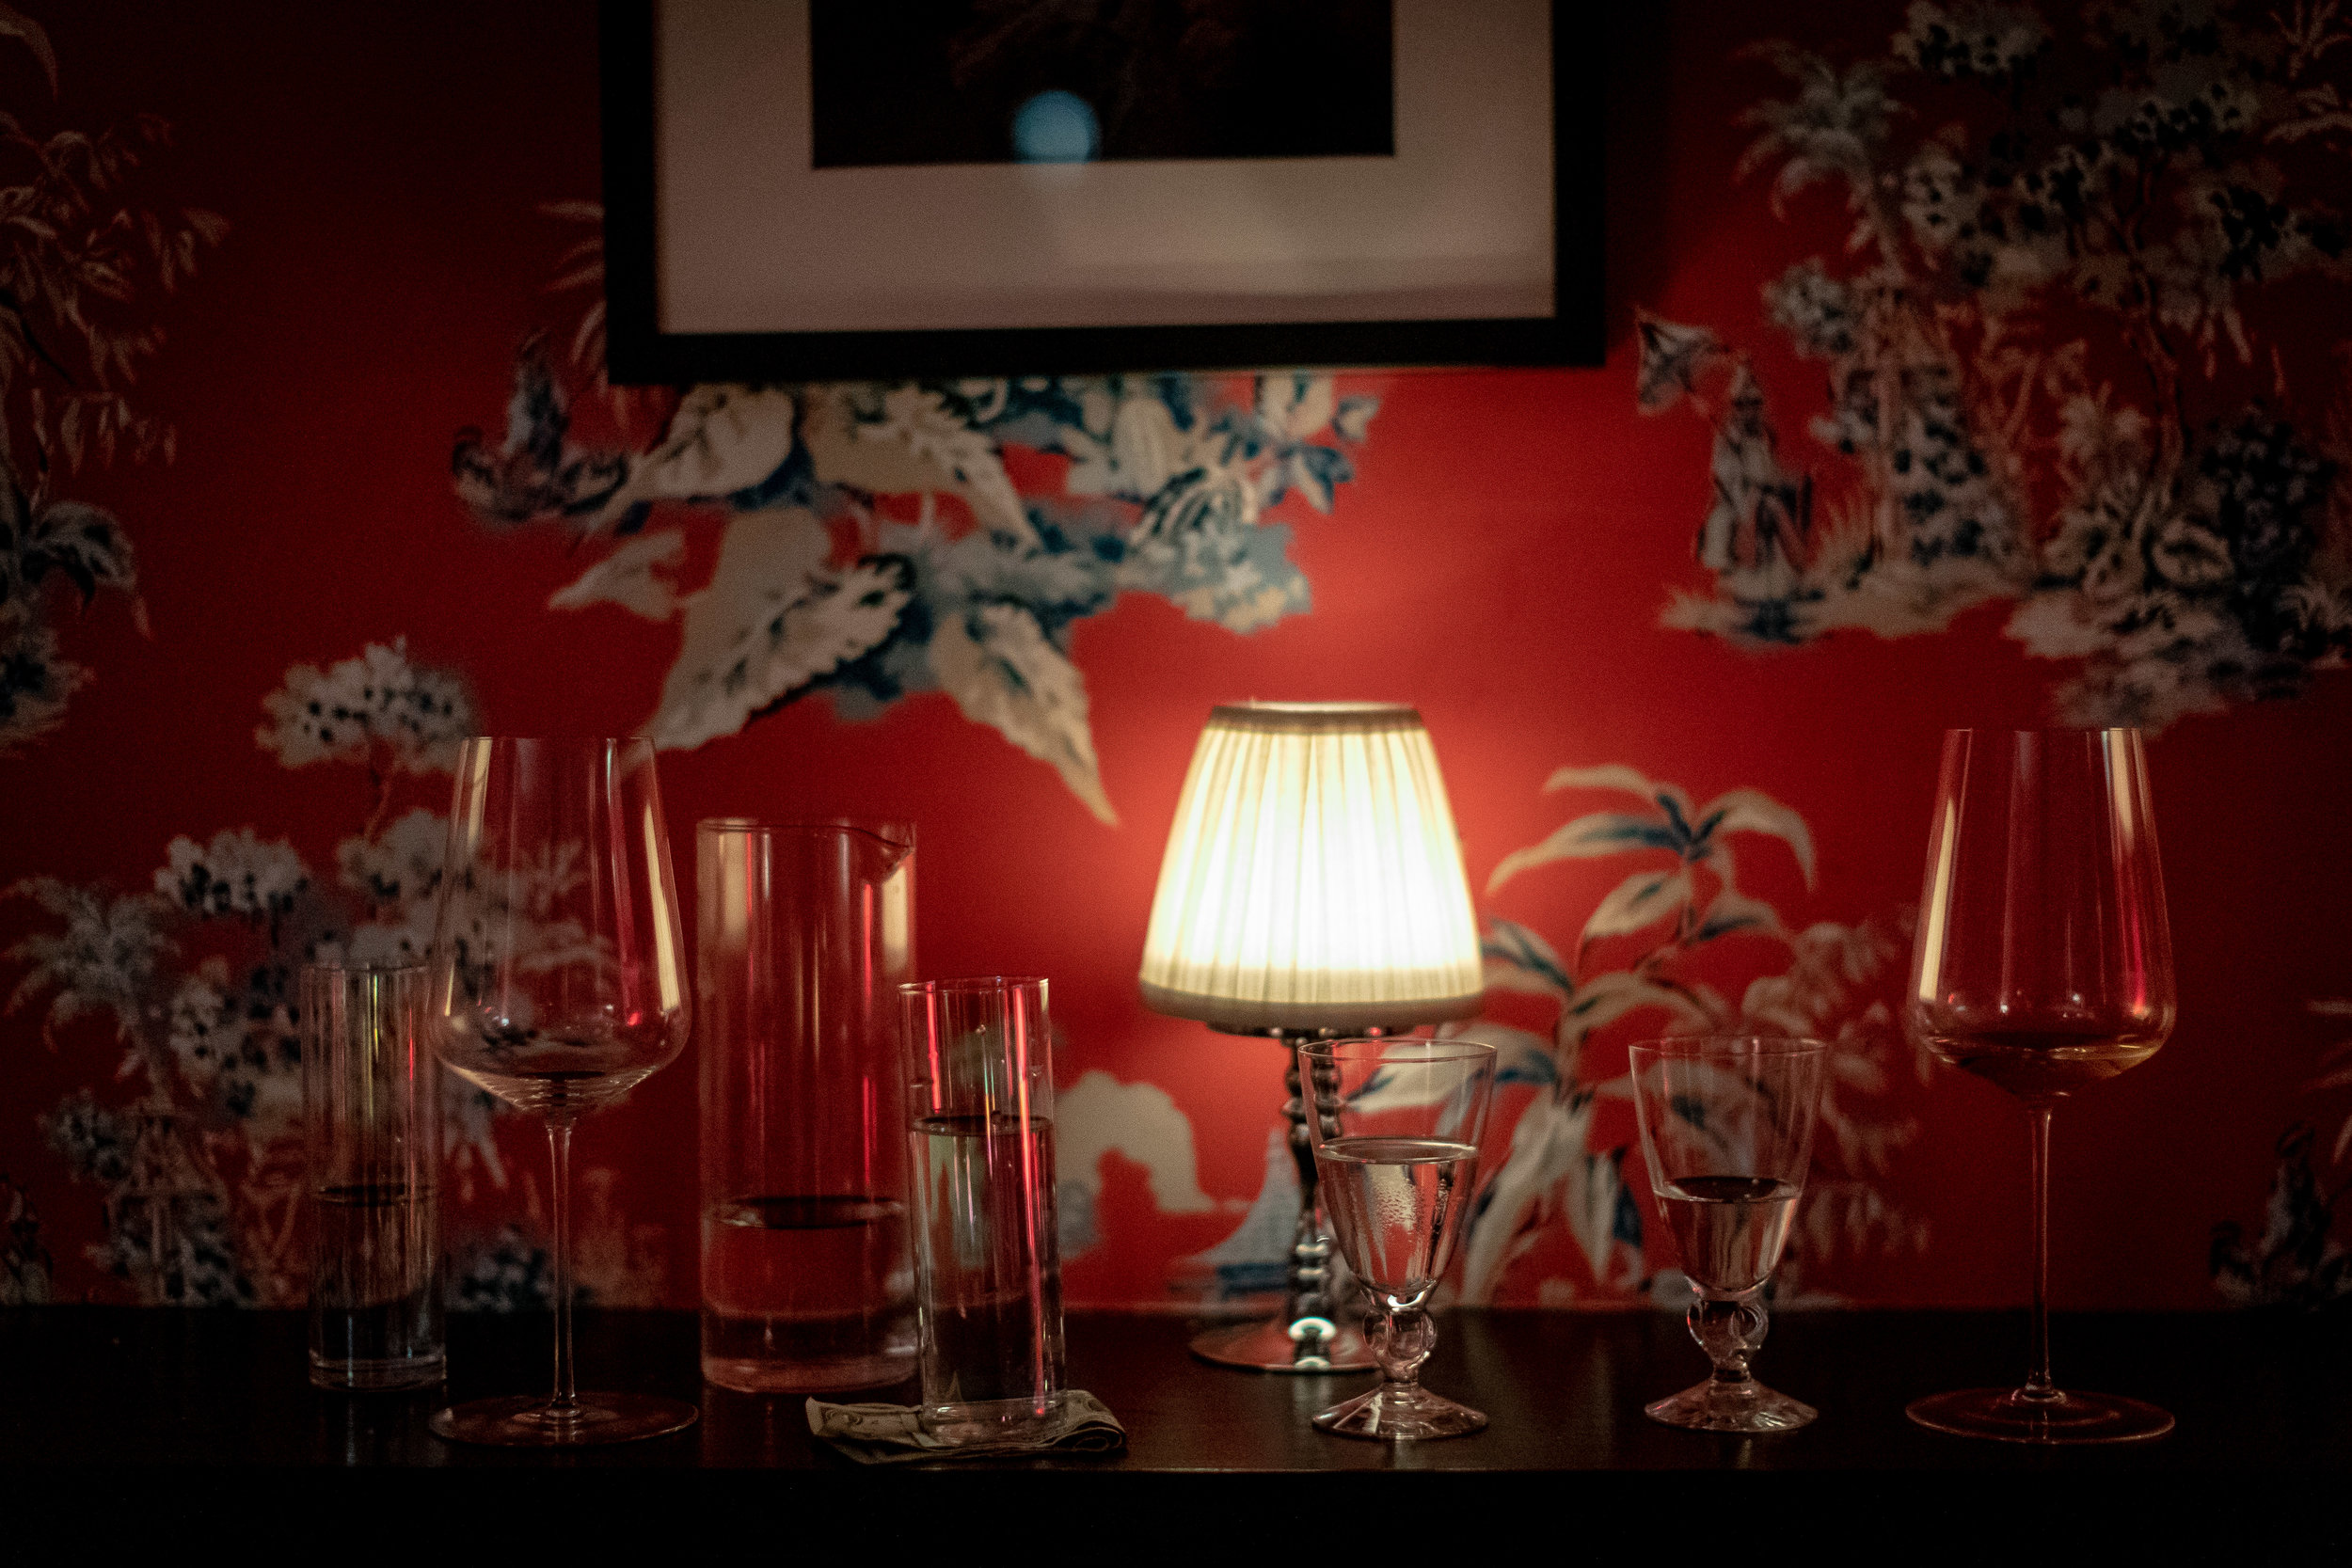 What will you order? - We have an extensive wine+sake list among Japanese inspired cocktails and dishes. If you must take a sneak peek before coming, be our guest! check out the menu here